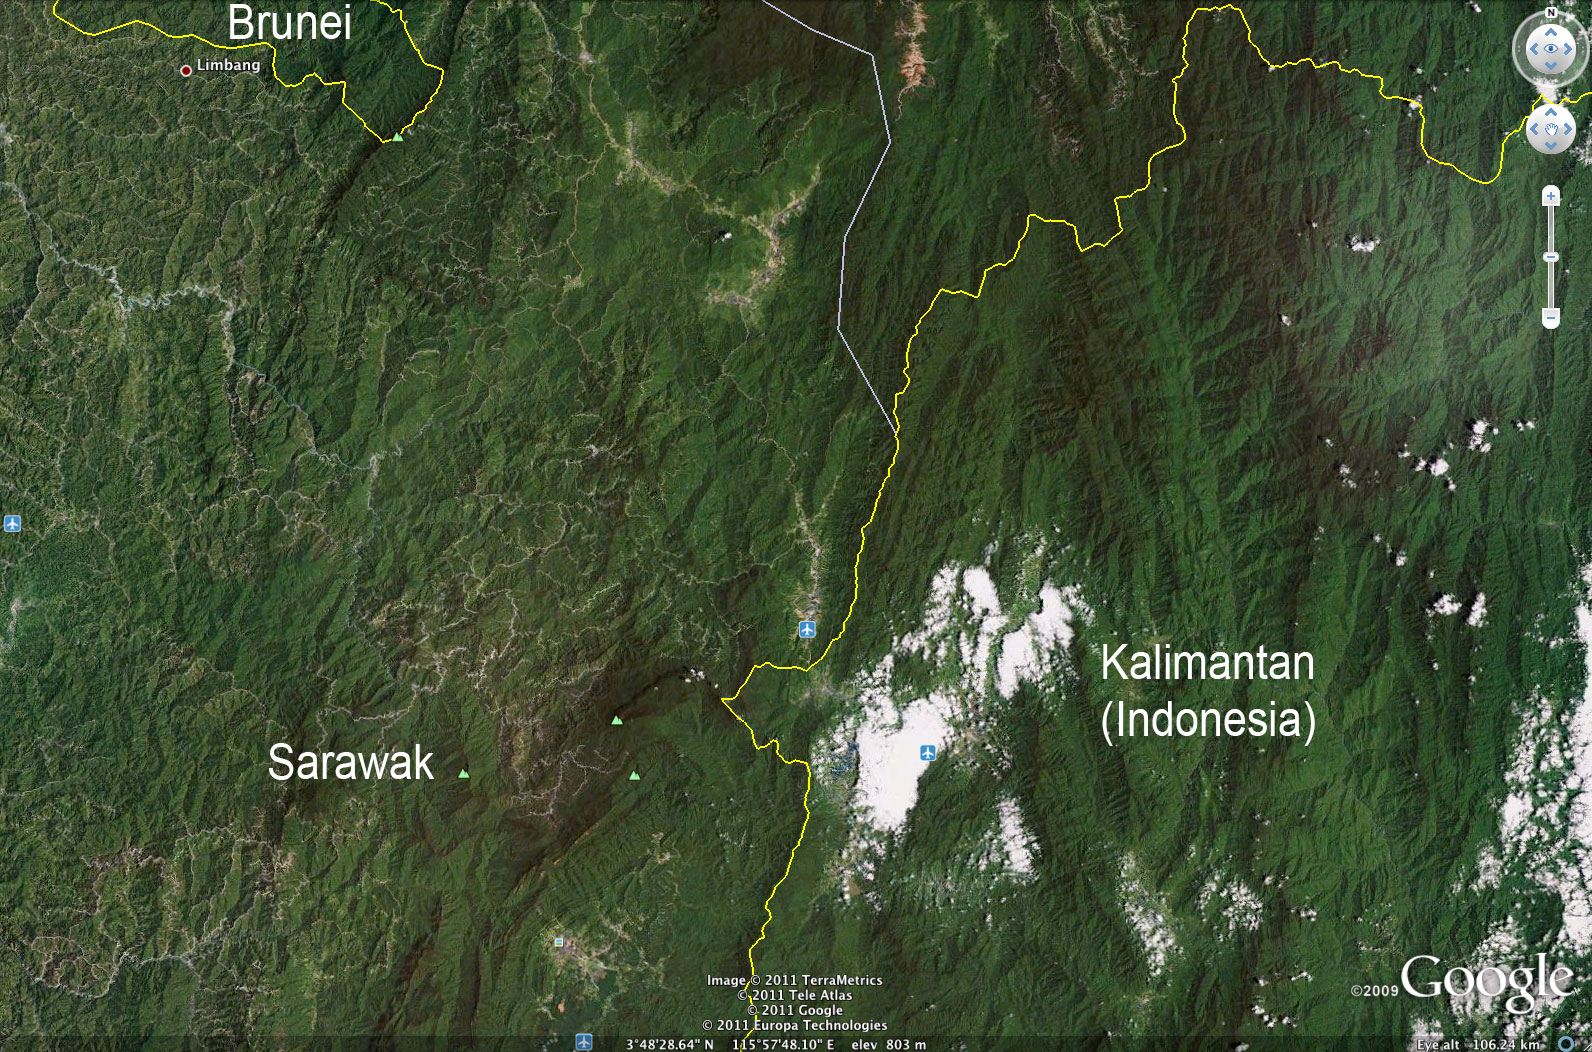 Google earth reveals stark contrast between sarawaks damaged logging roads and damaged forest in sarawak compared with the healthy forest of kalimantan indonesian gumiabroncs Choice Image